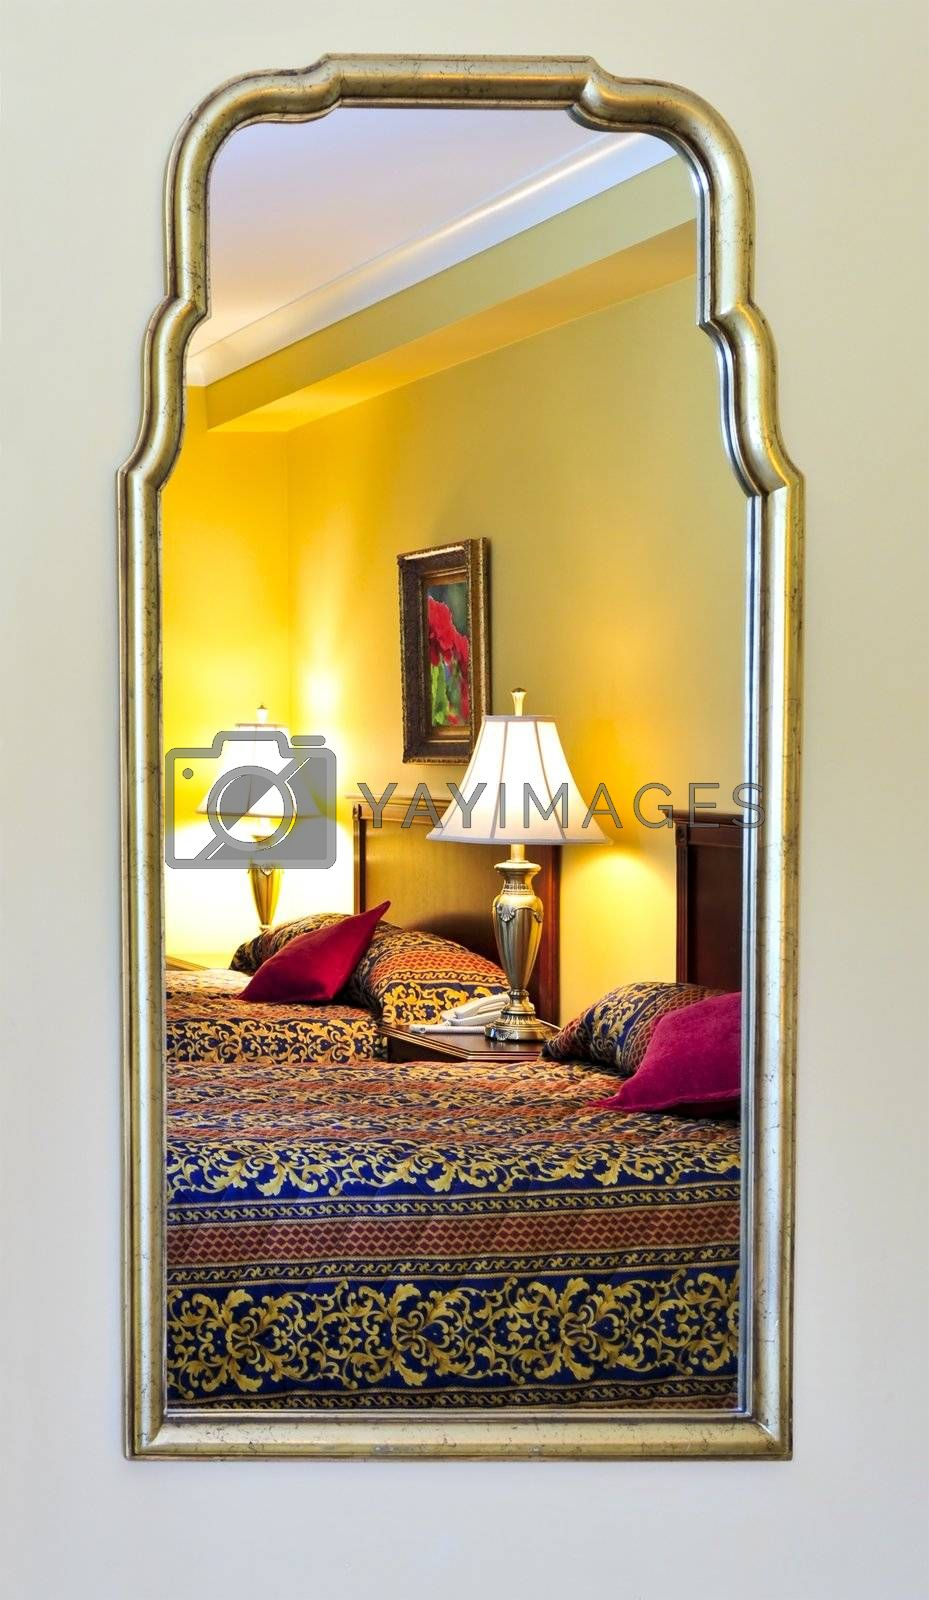 Bedroom interior reflected in mirror by elenathewise